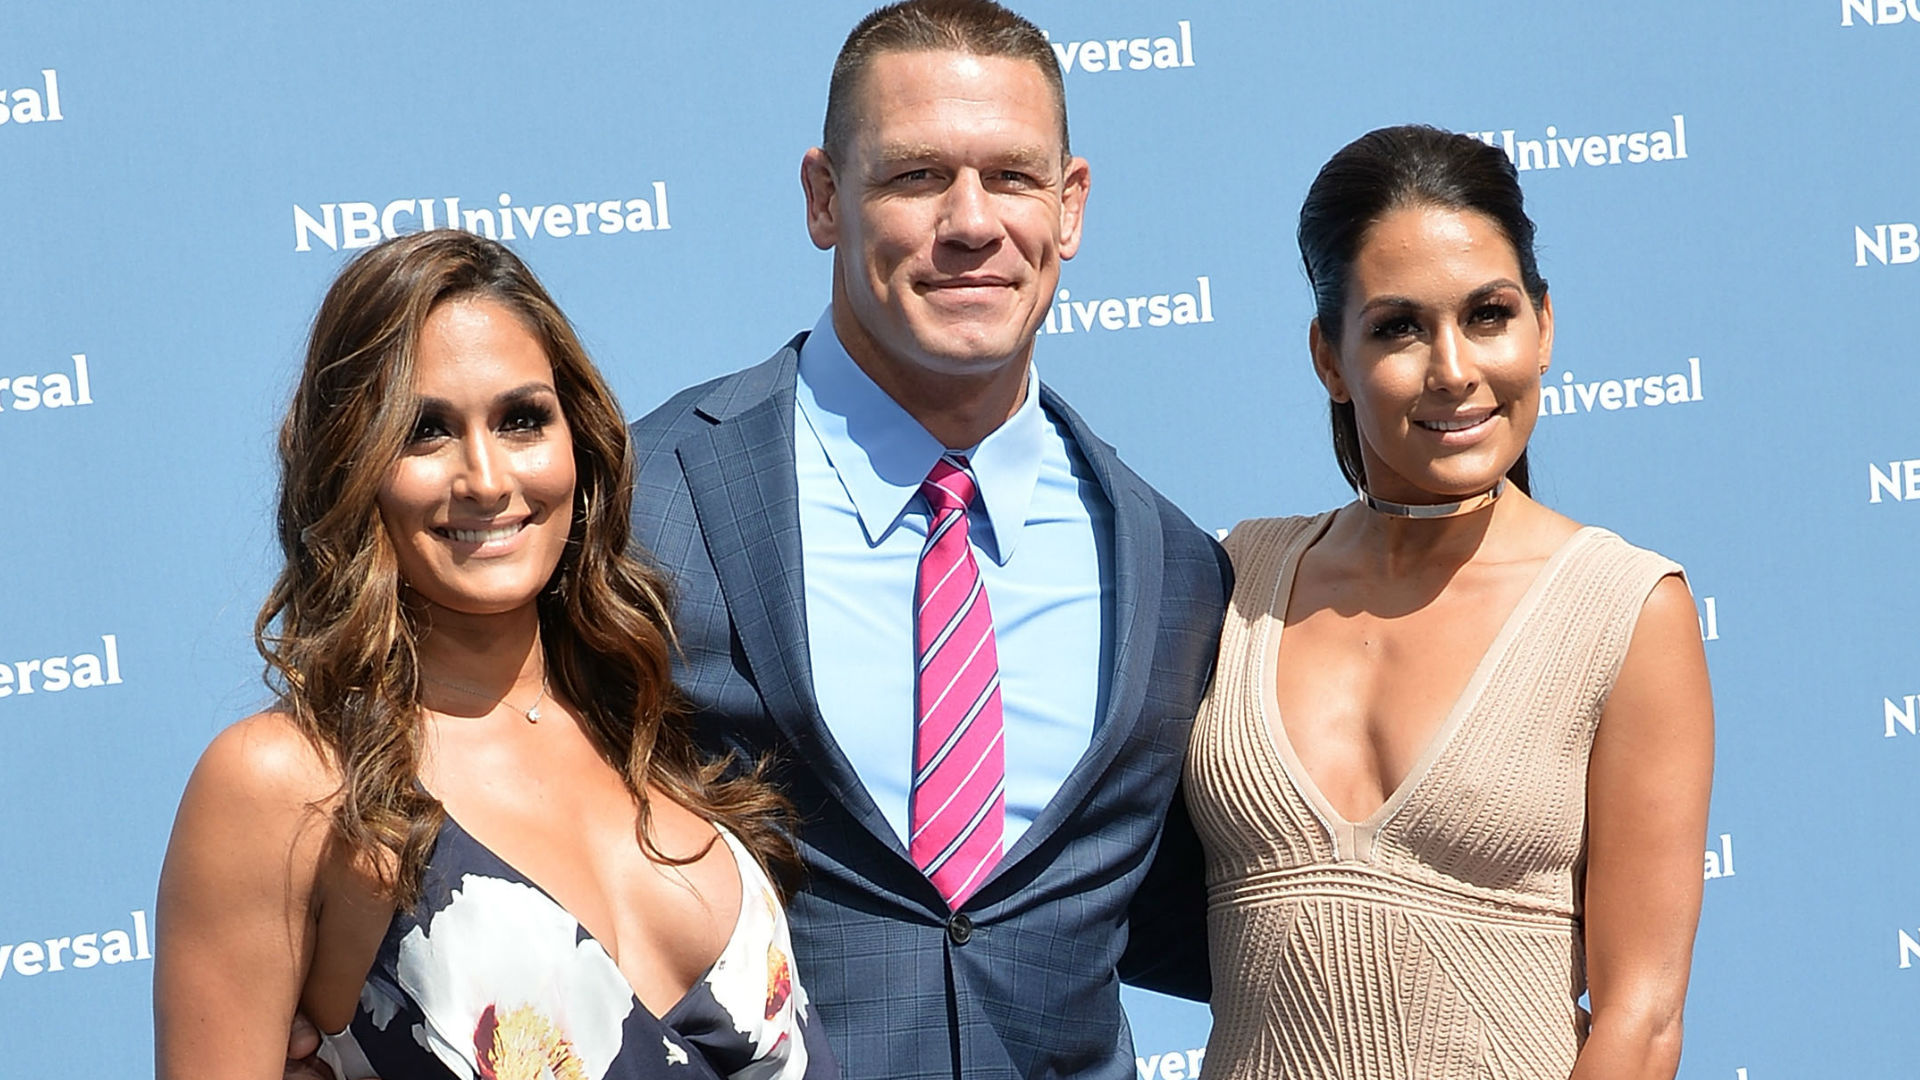 John Cena and The Bella Twins